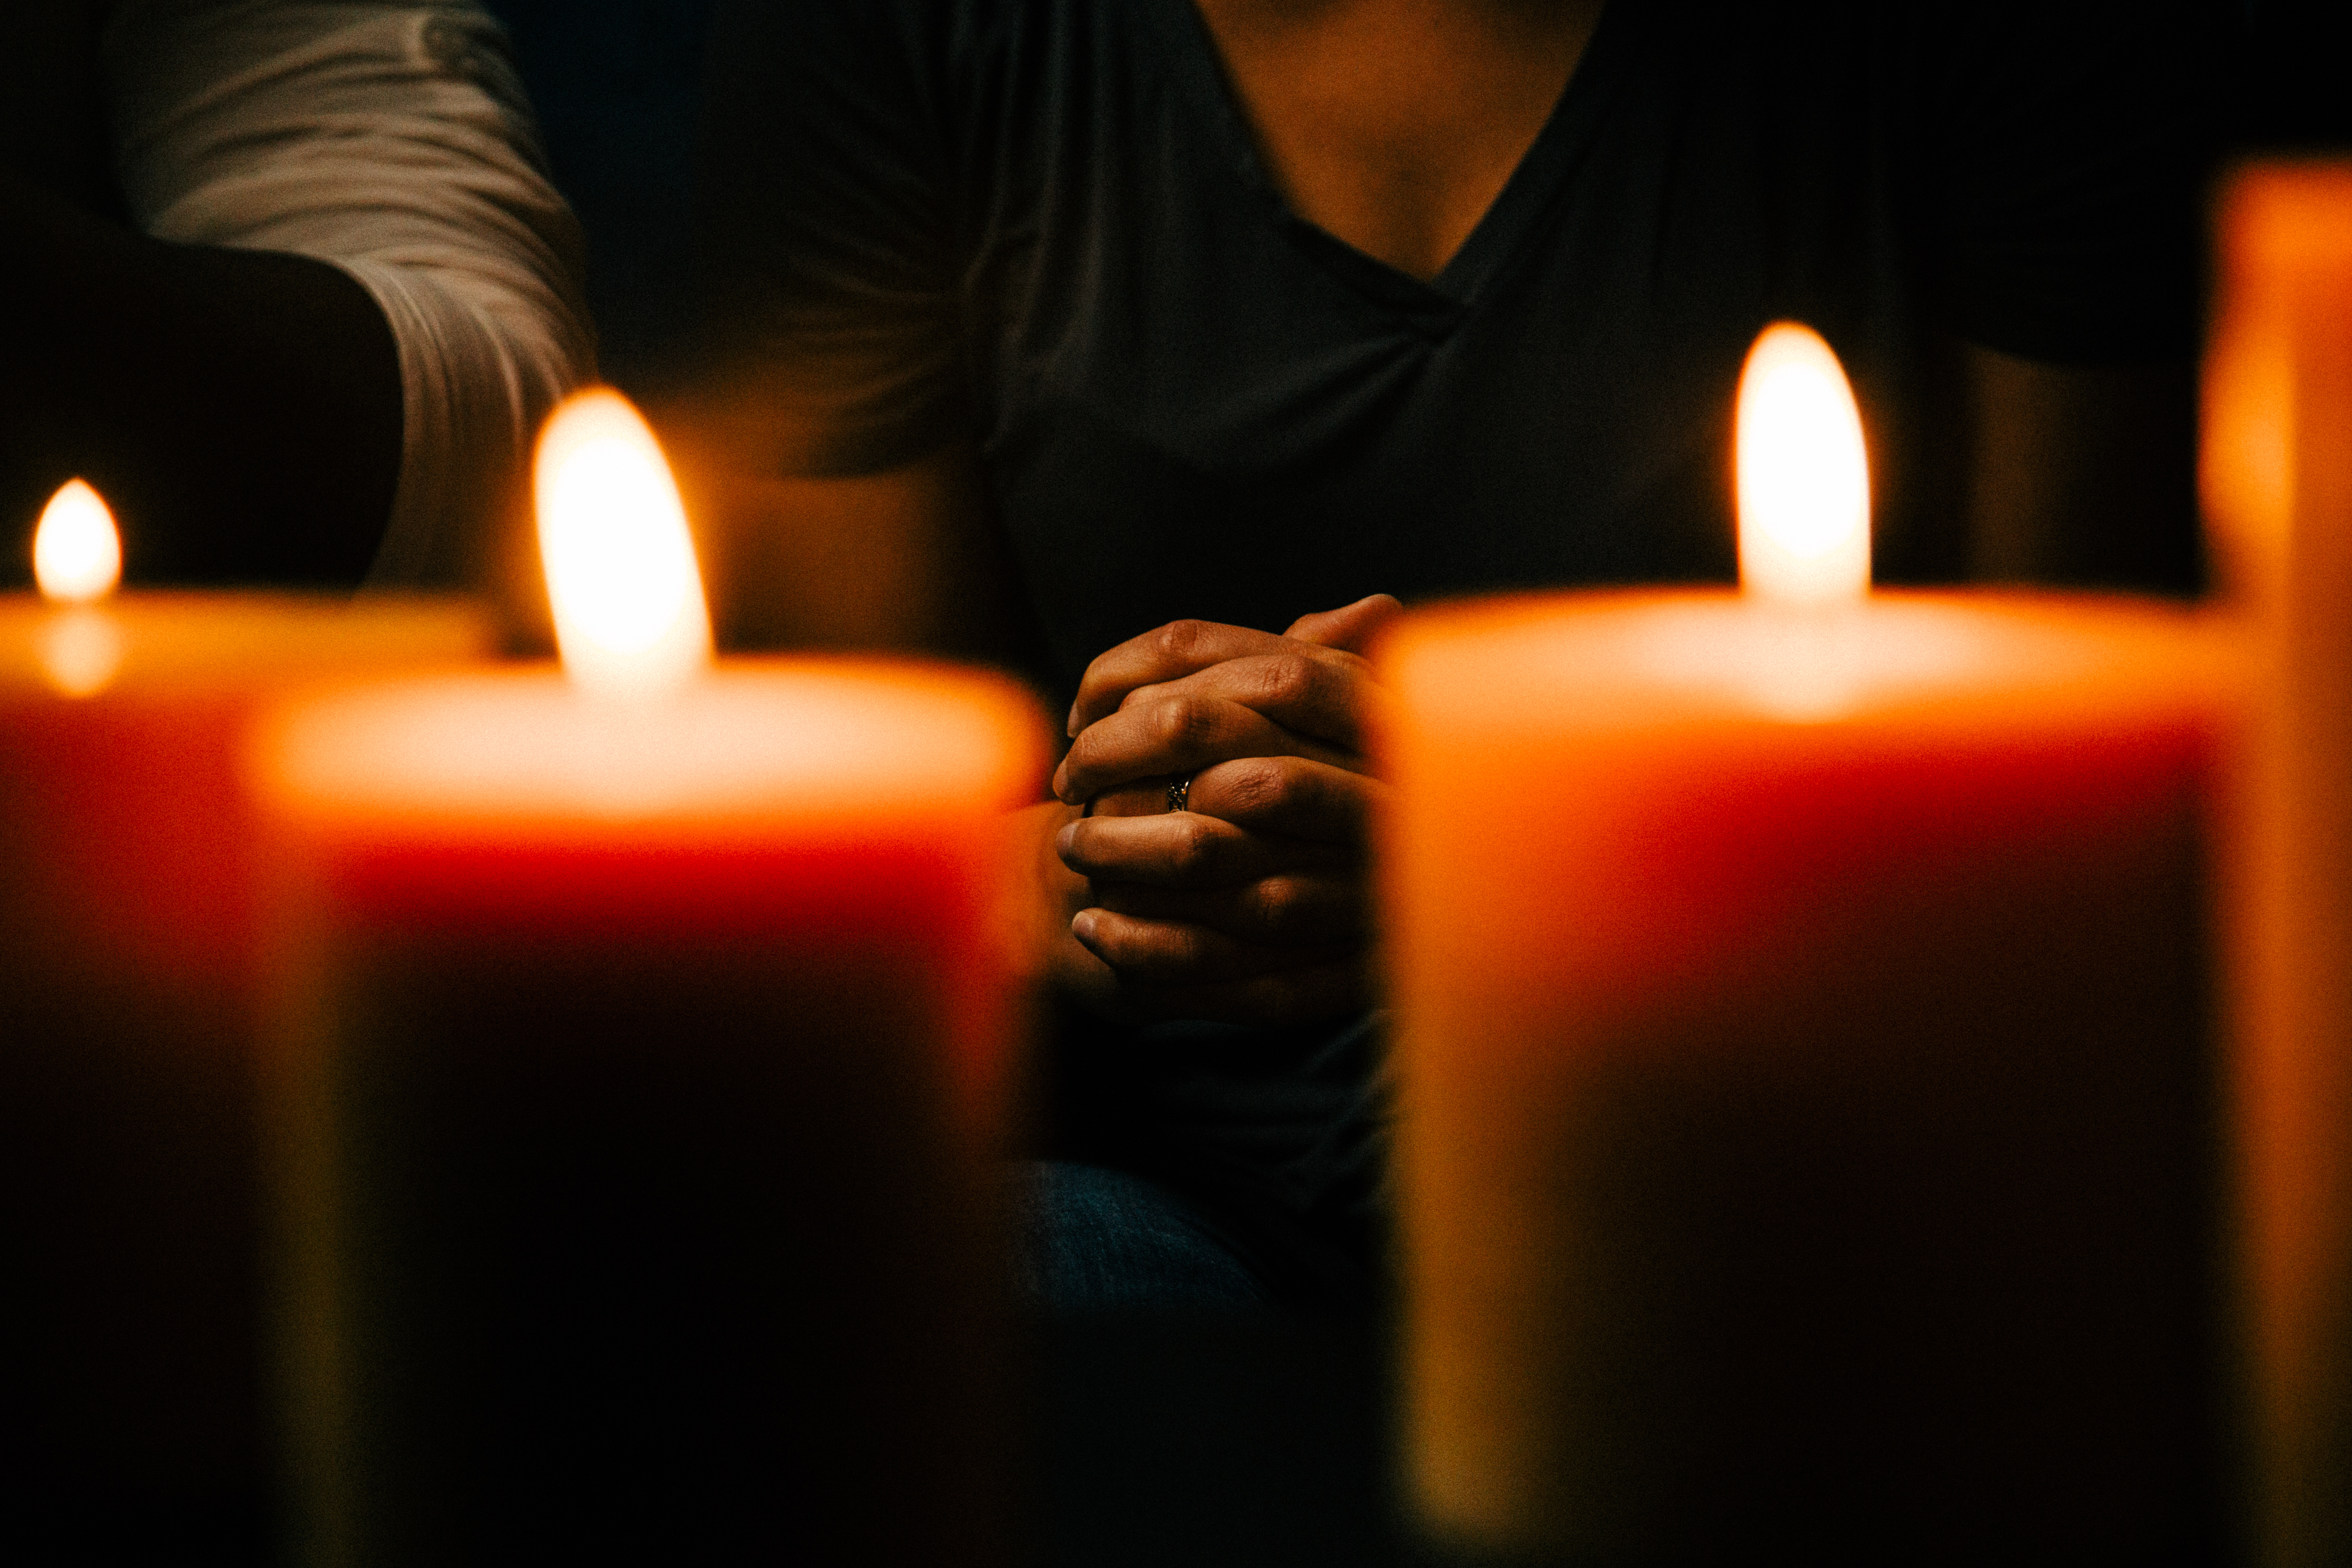 Woman Praying in Candle Lit Room